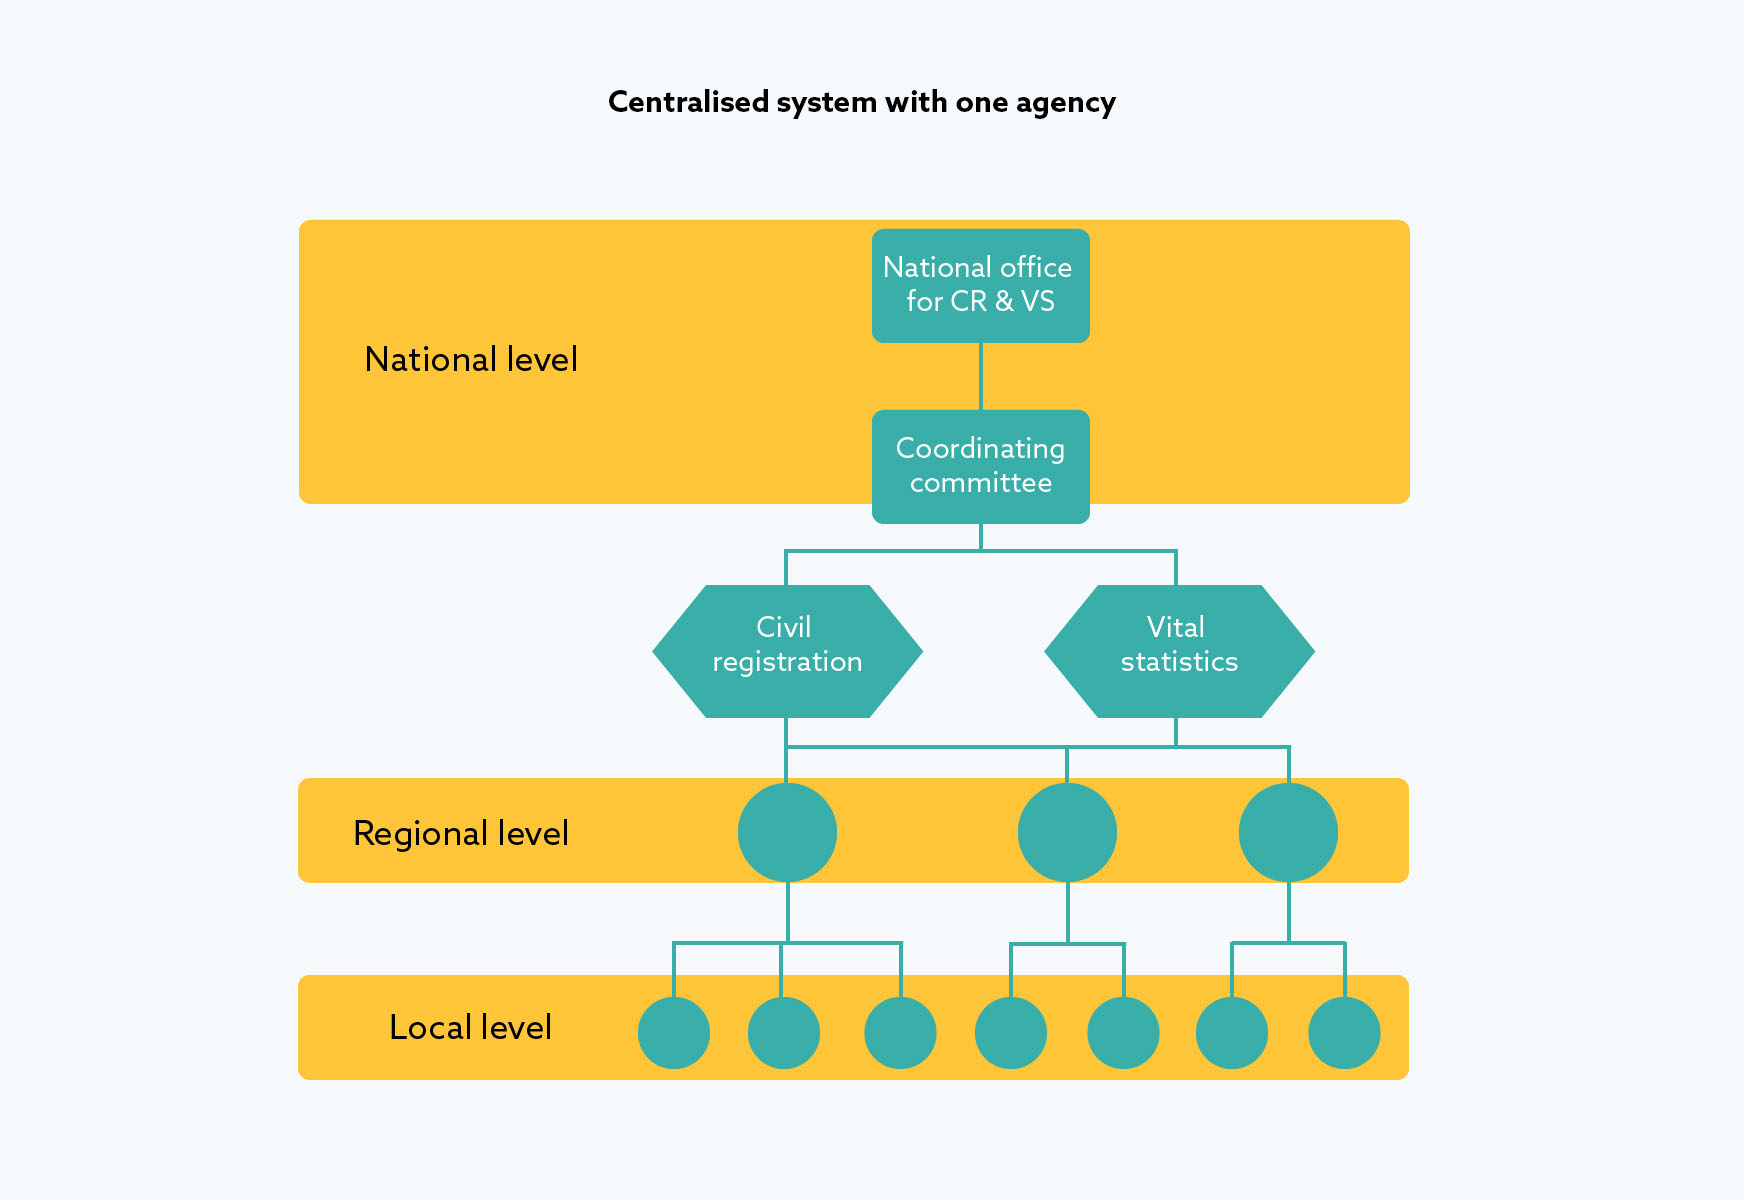 Centralised system with one agency